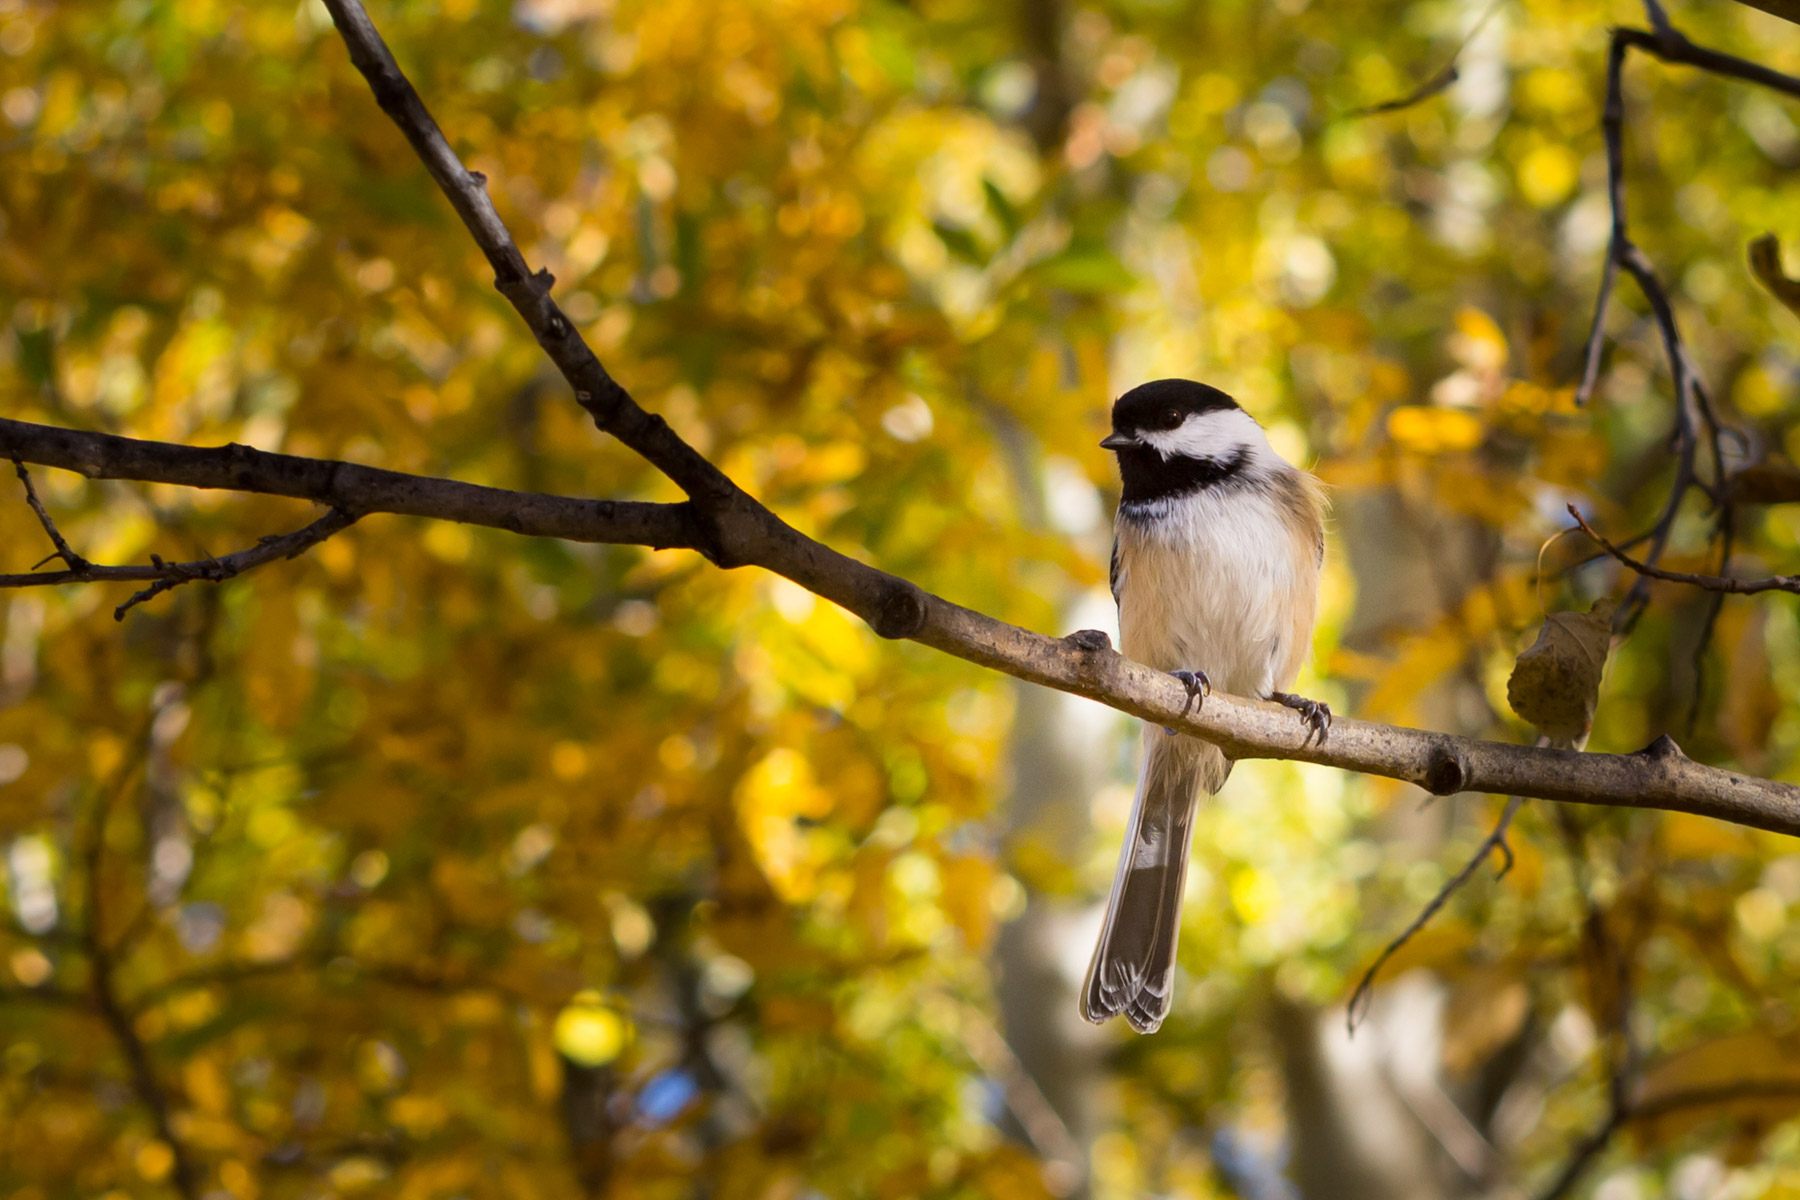 Chickadee in Autumn at Clifford E Lee Nature Sanctuary - Parkland County, Alberta  - Tracey Sawatzky, Adventure Photographer